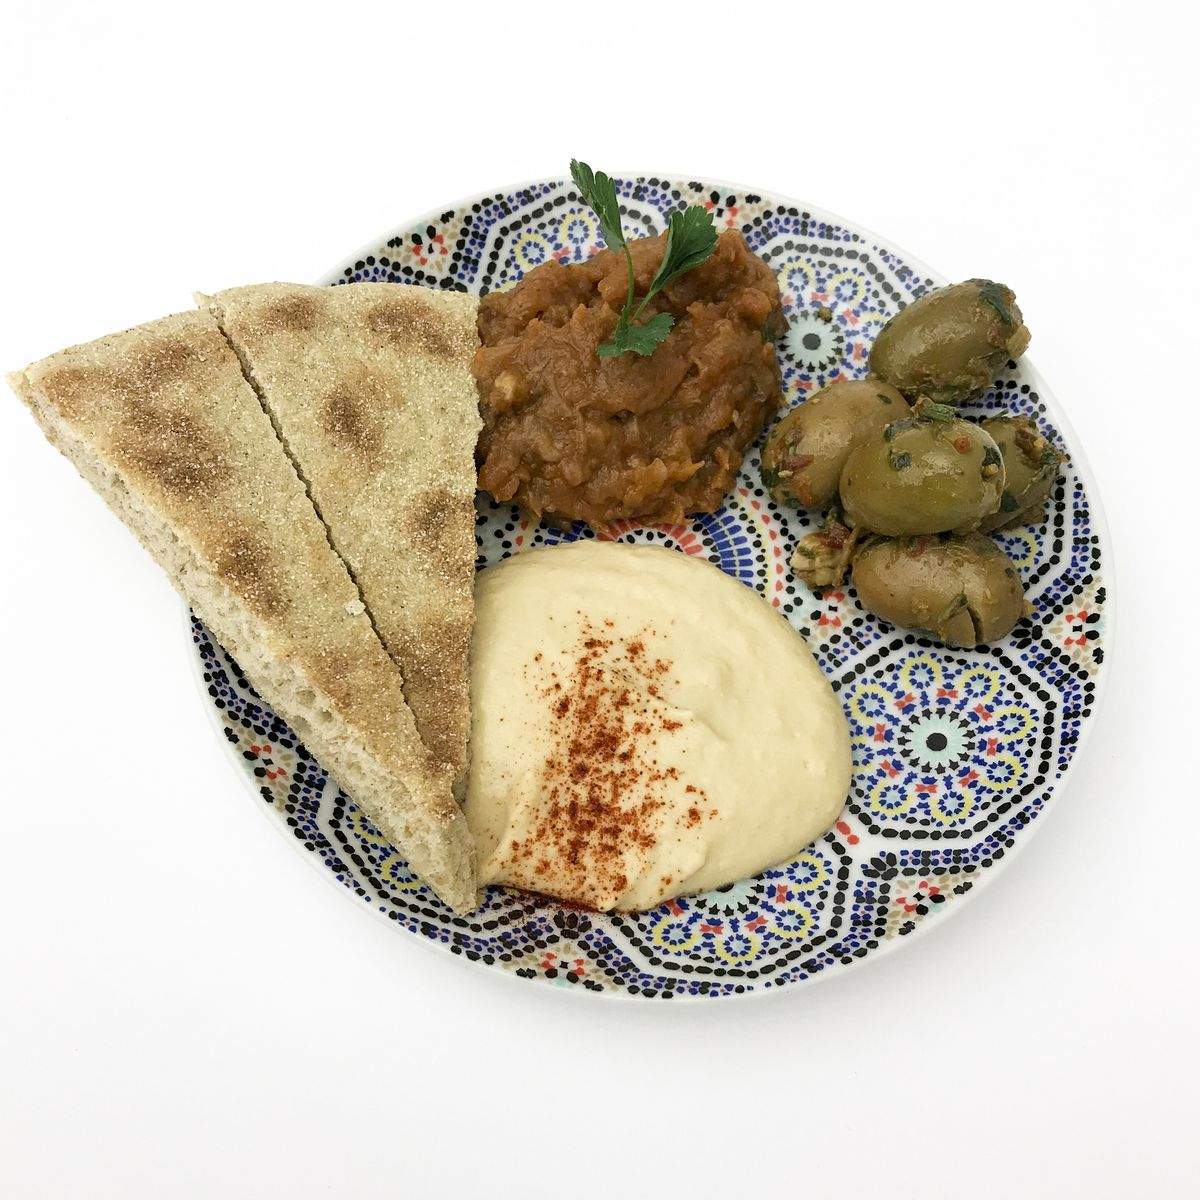 The mezze plate from Moroccan and Mediterranean food stall Marrakech Express.